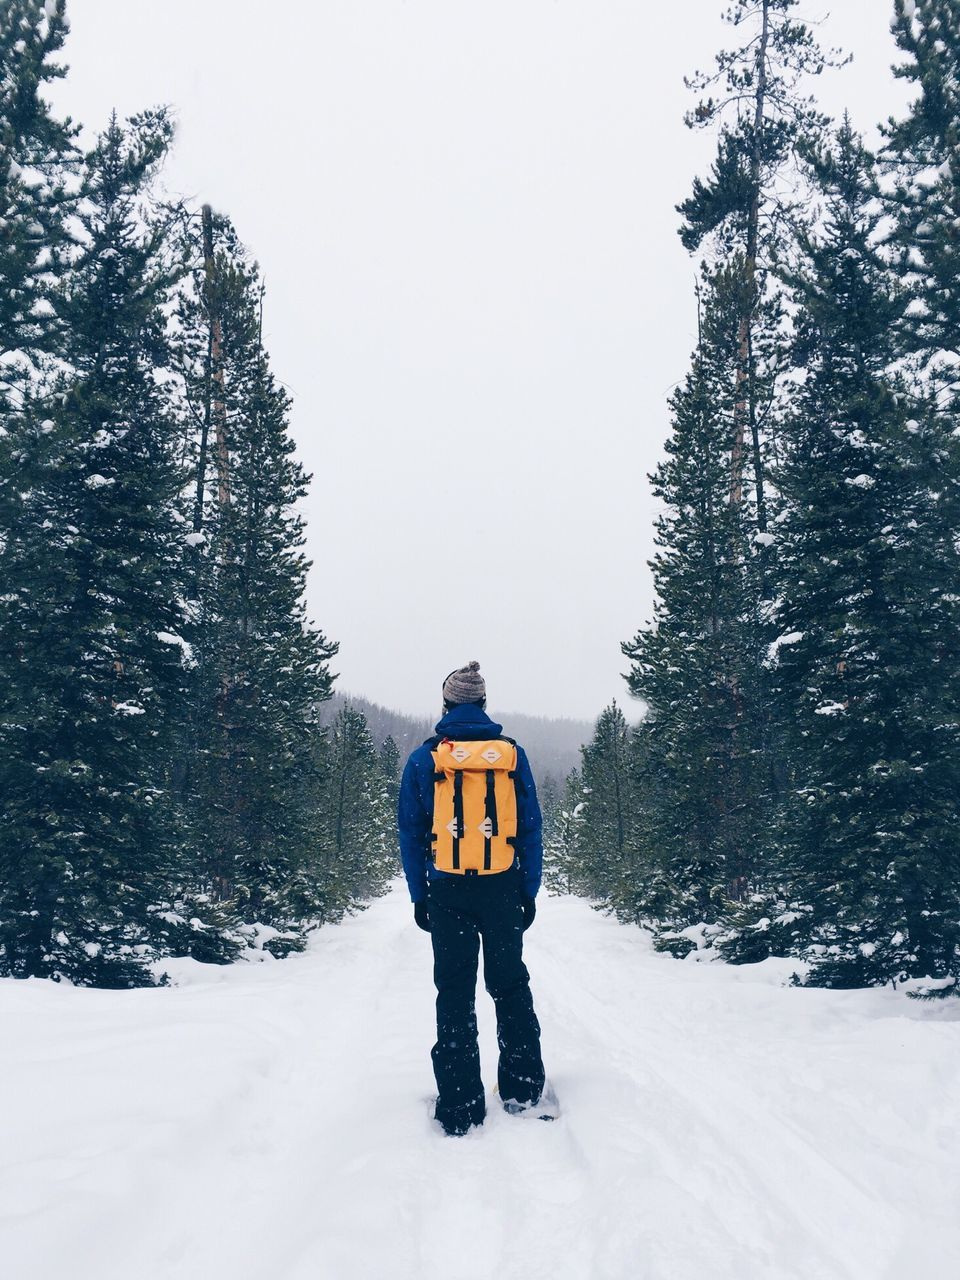 Full Length Of A Person Standing On Snow Covered Road